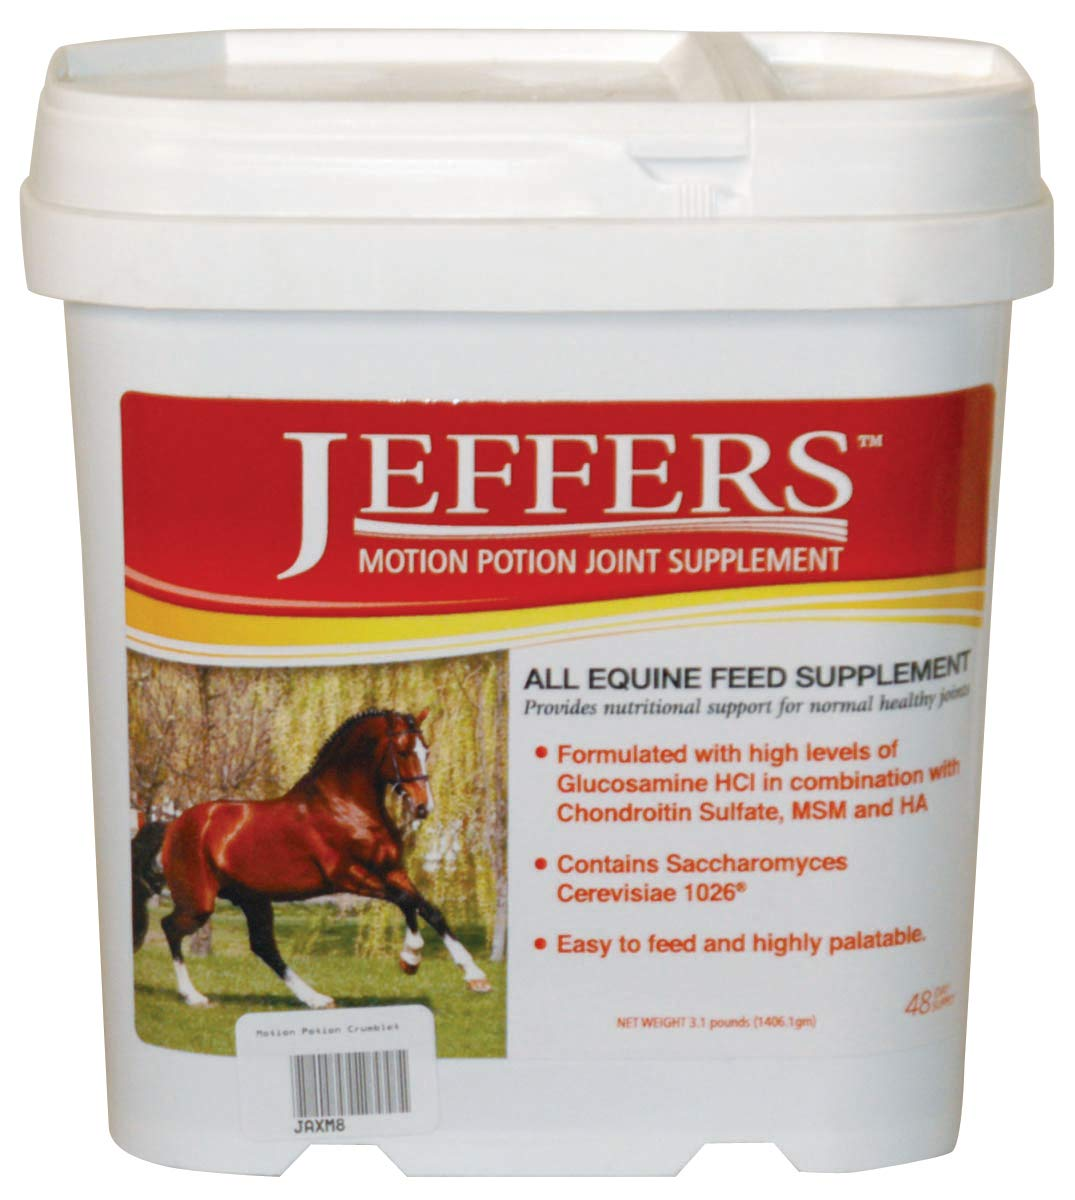 Jeffers Motion Potion (3 lbs) by Ahc Products Inc